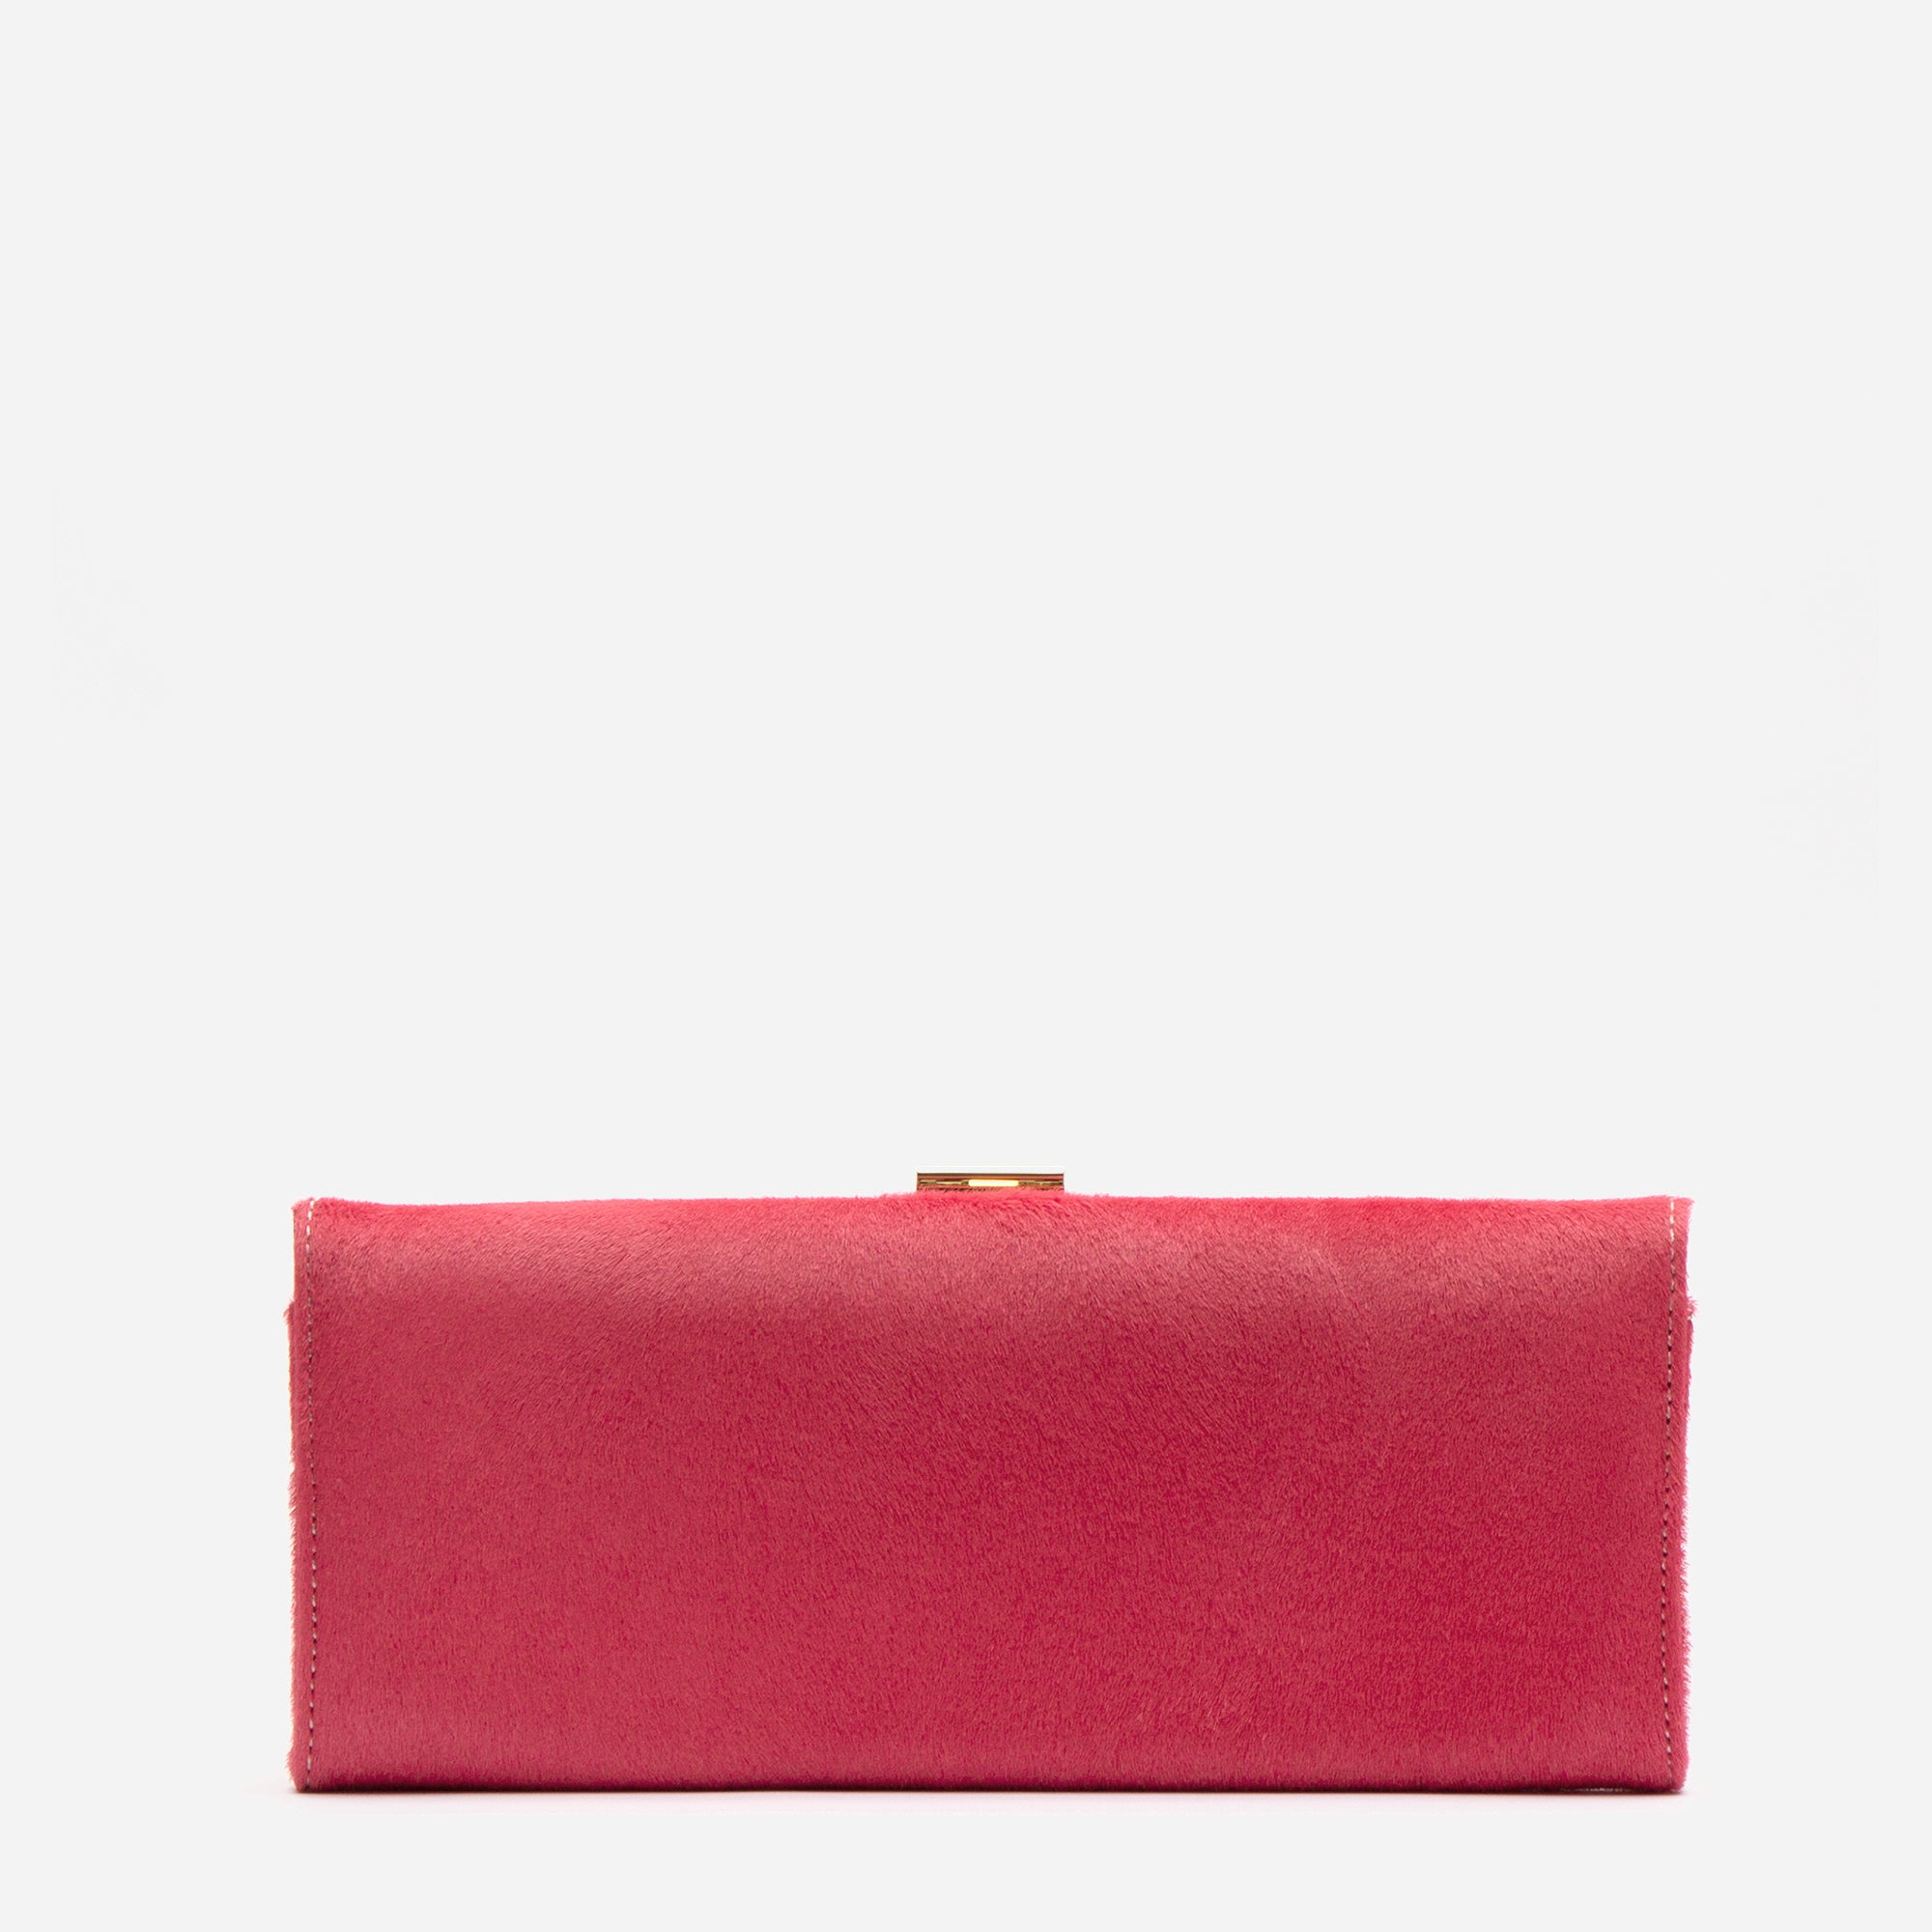 Eleni Handheld Clutch Pink Haircalf